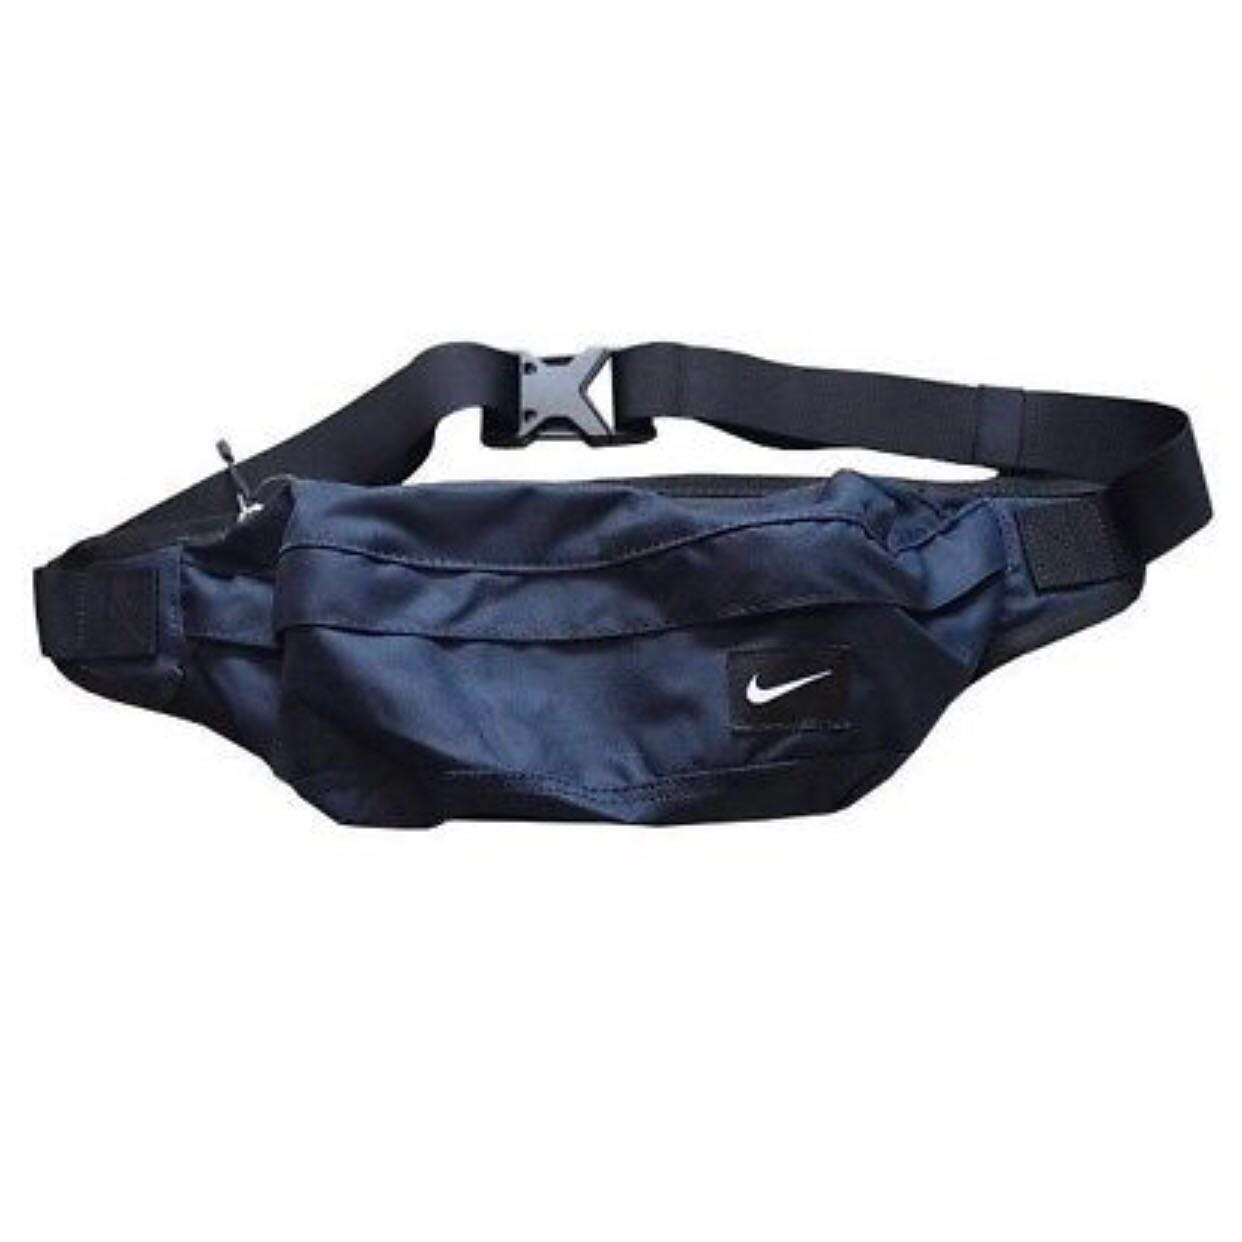 AUTHENTIC Nike HOOD waistpack Sport Waist Messenger Shoulder Bag, Men s  Fashion, Bags   Wallets, Sling Bags on Carousell aed372a2fb